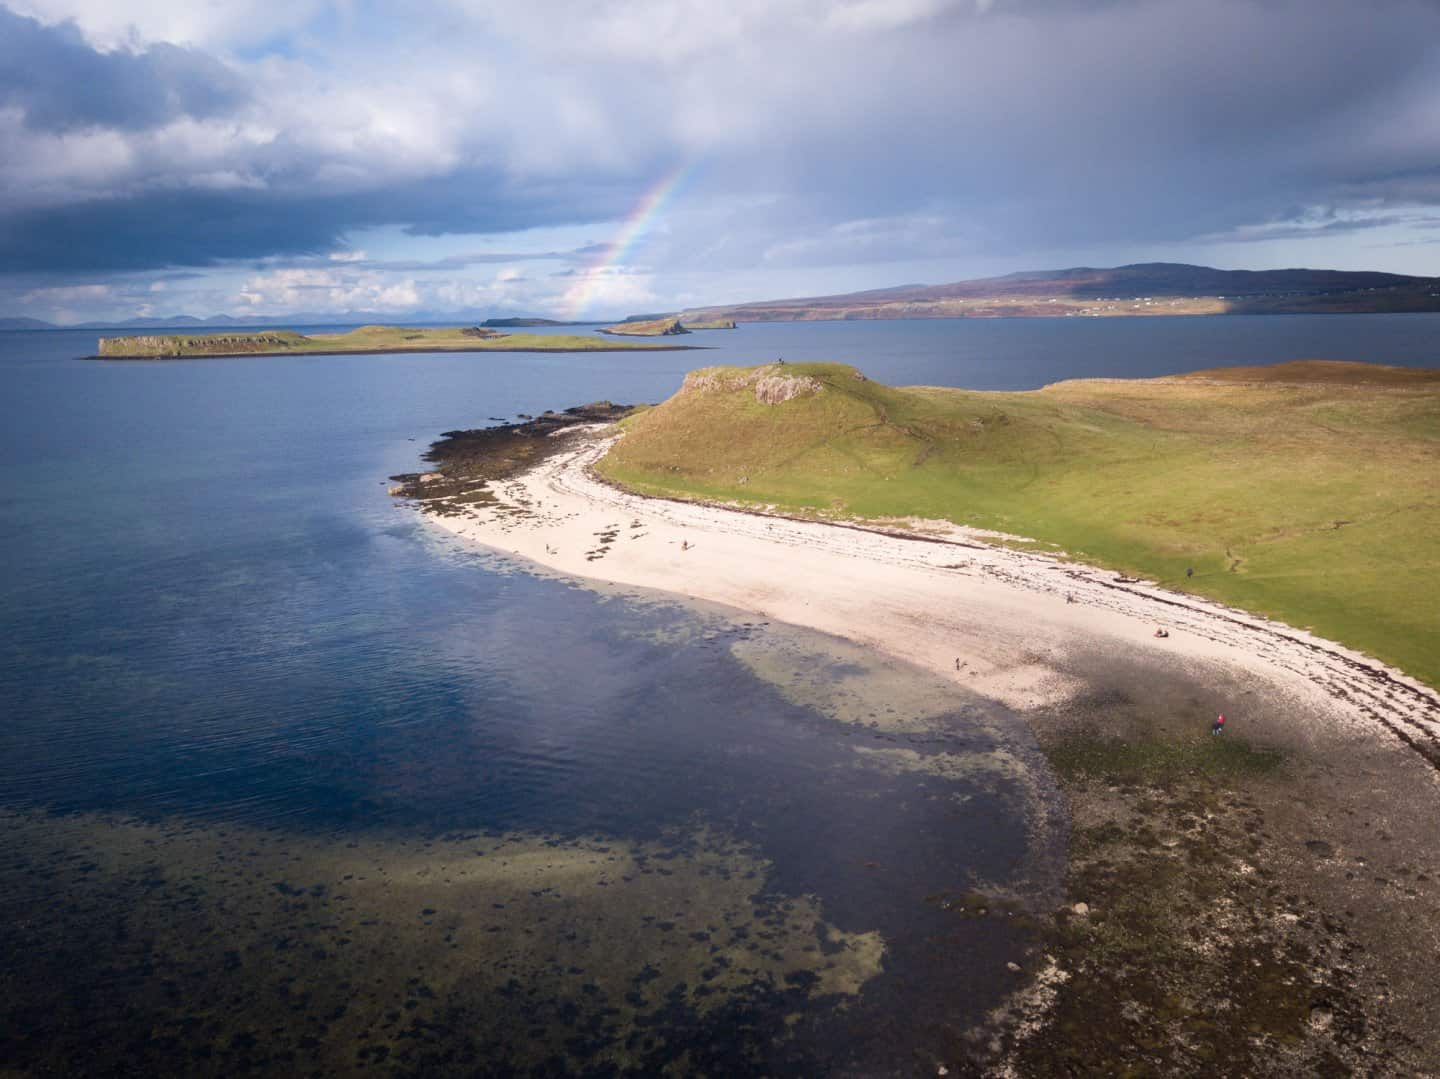 The only beach you will see during 10 days in Scotland is Coral beach, seen here with a rainbow.